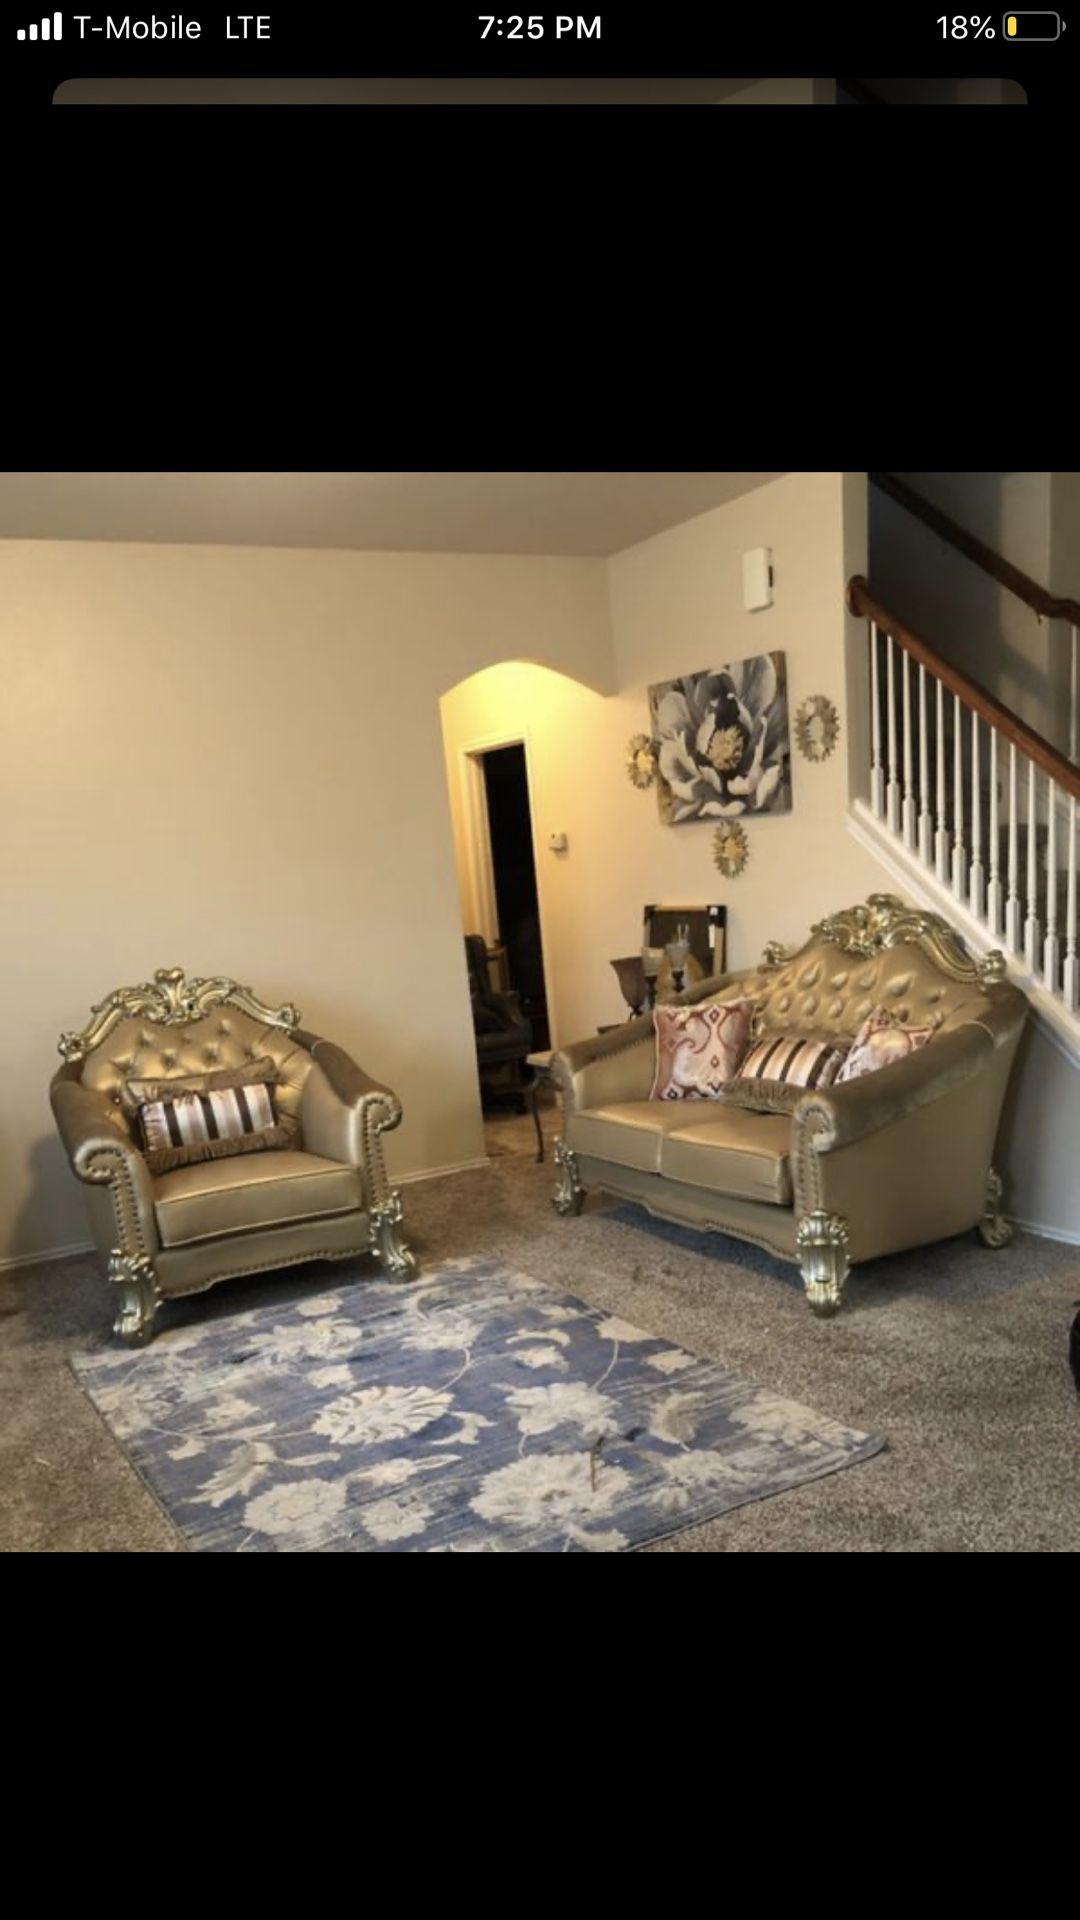 El Rio furniture finance available down payment $39 1456 belt line rd suite 121 Garland tx 75044 Open from 9:30-8:30